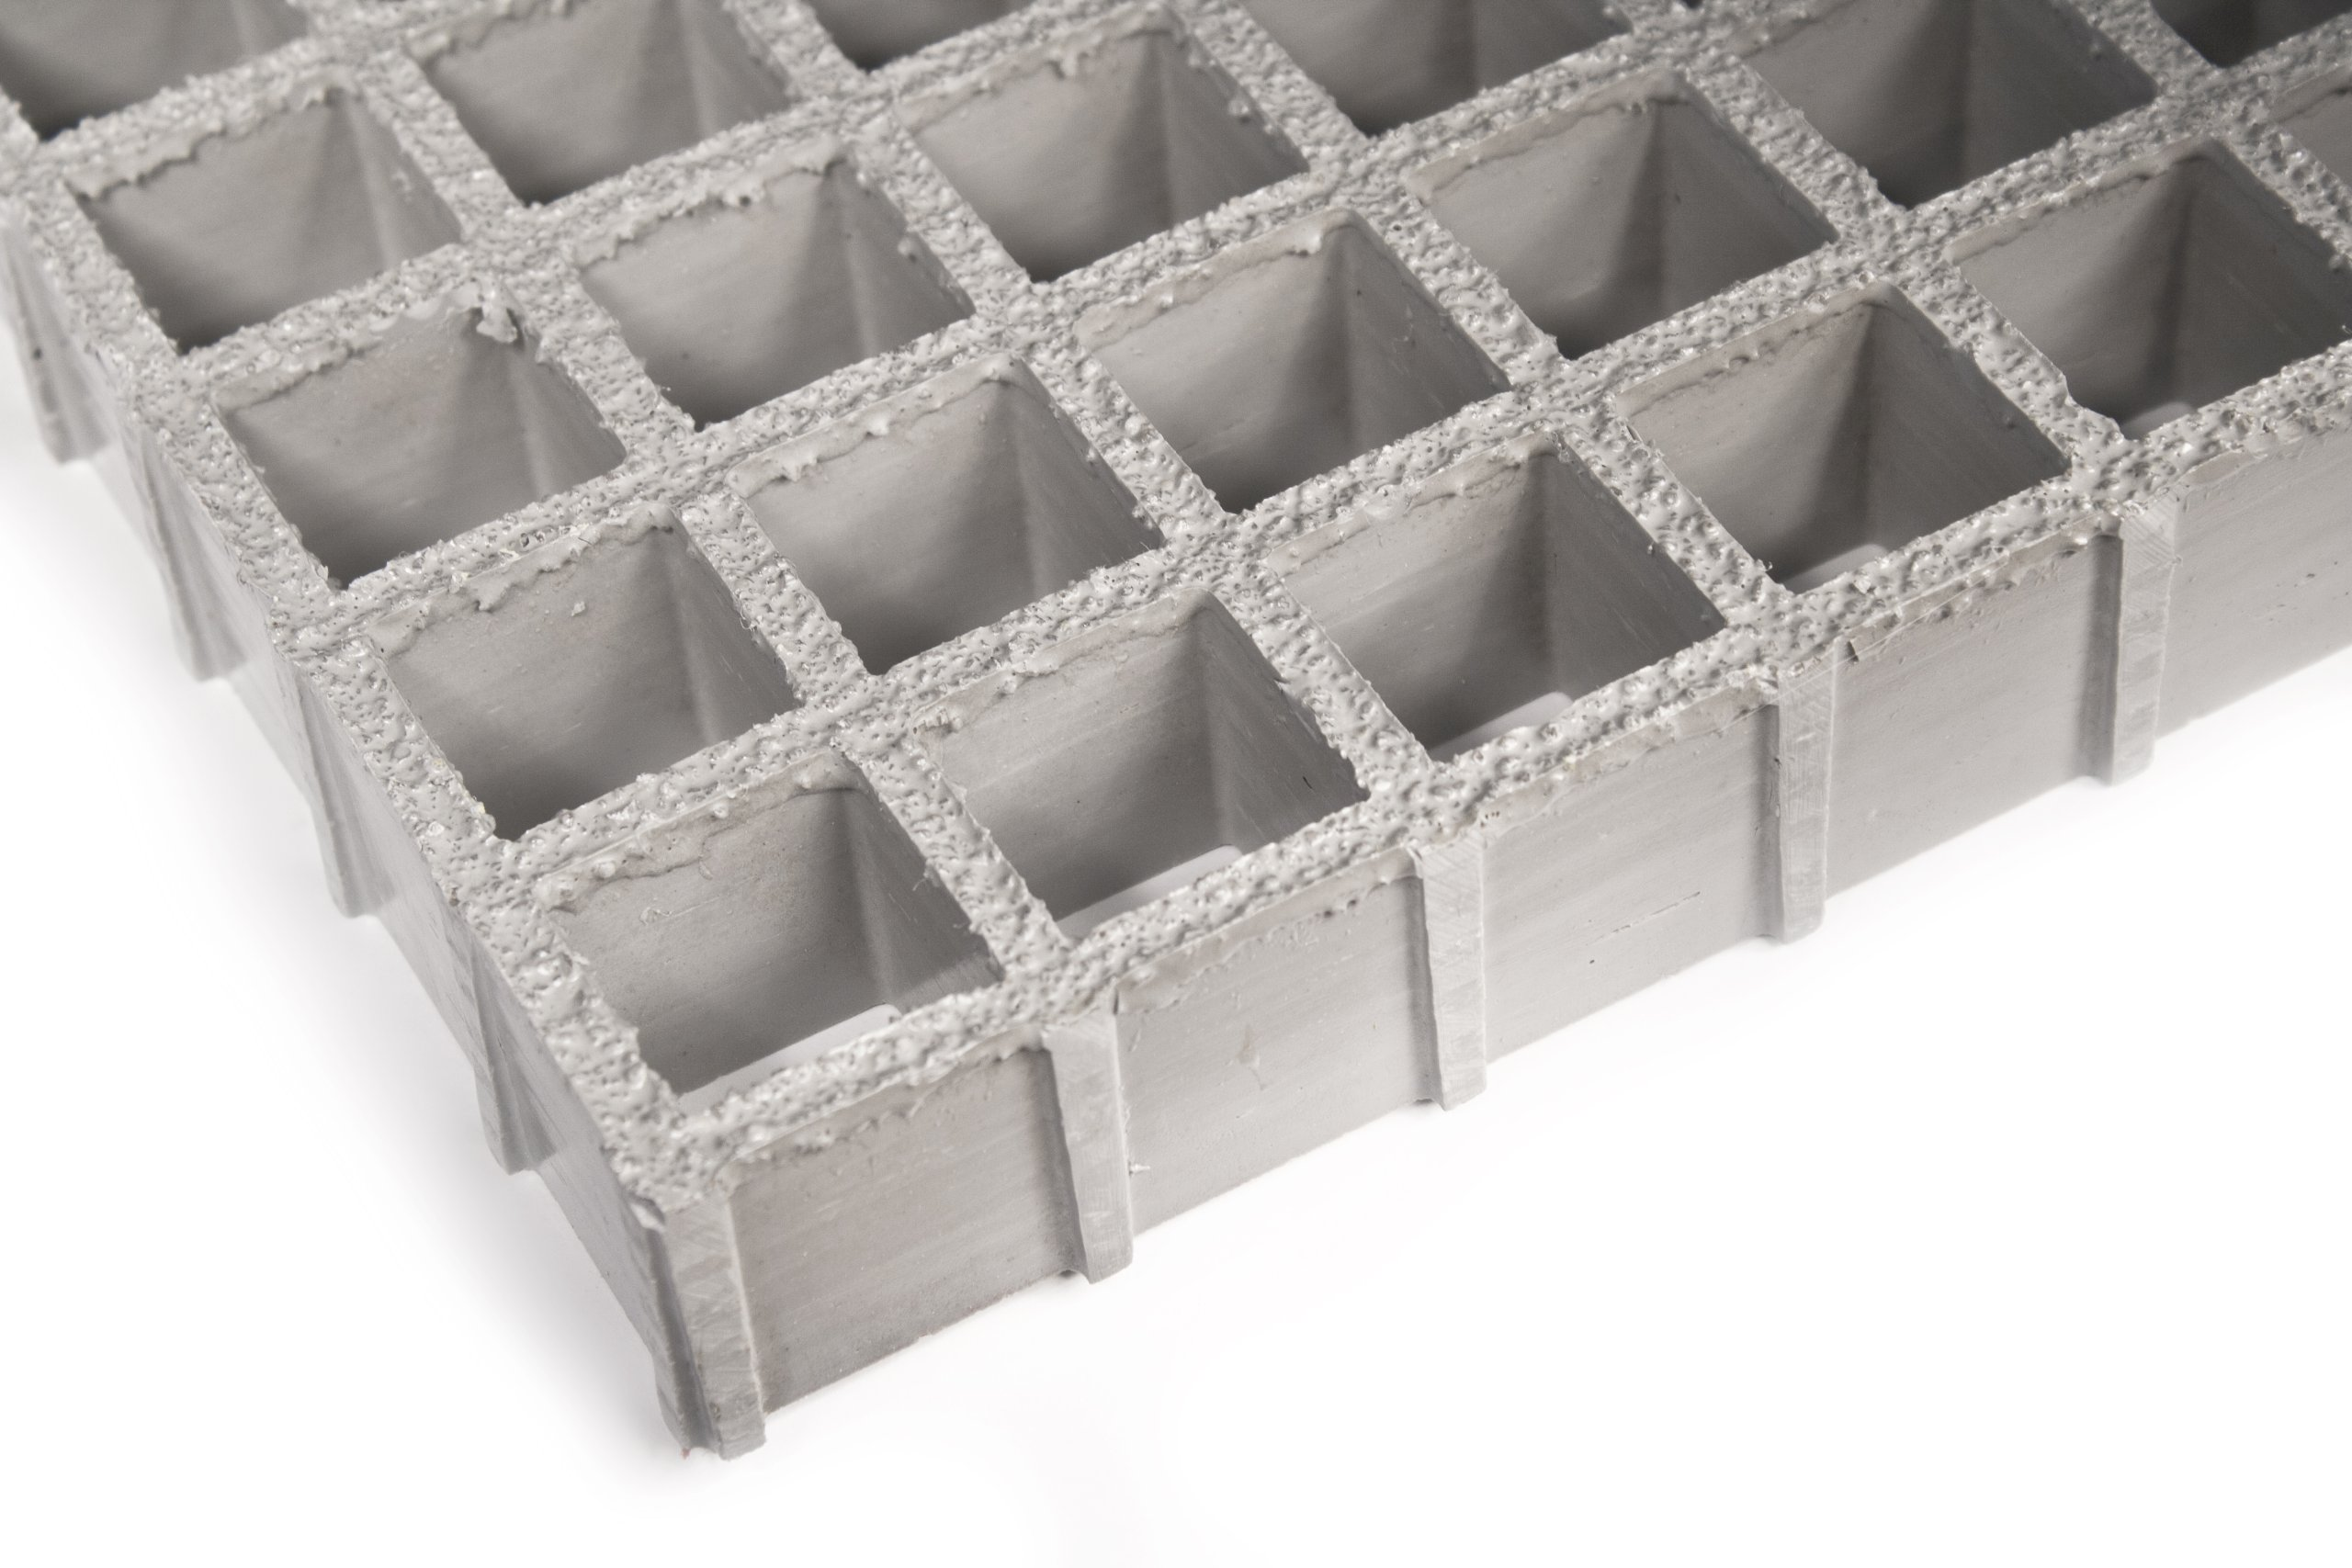 Fiberglass Grating, Standard Tolerance, Gray, Antimicrobial Grit-Top/Slip Resistant/Fire Retardant, 1'' Thickness, 4' Width, 4' Length, 1-1/2'' x 1-1/2'' Openings by Small Parts